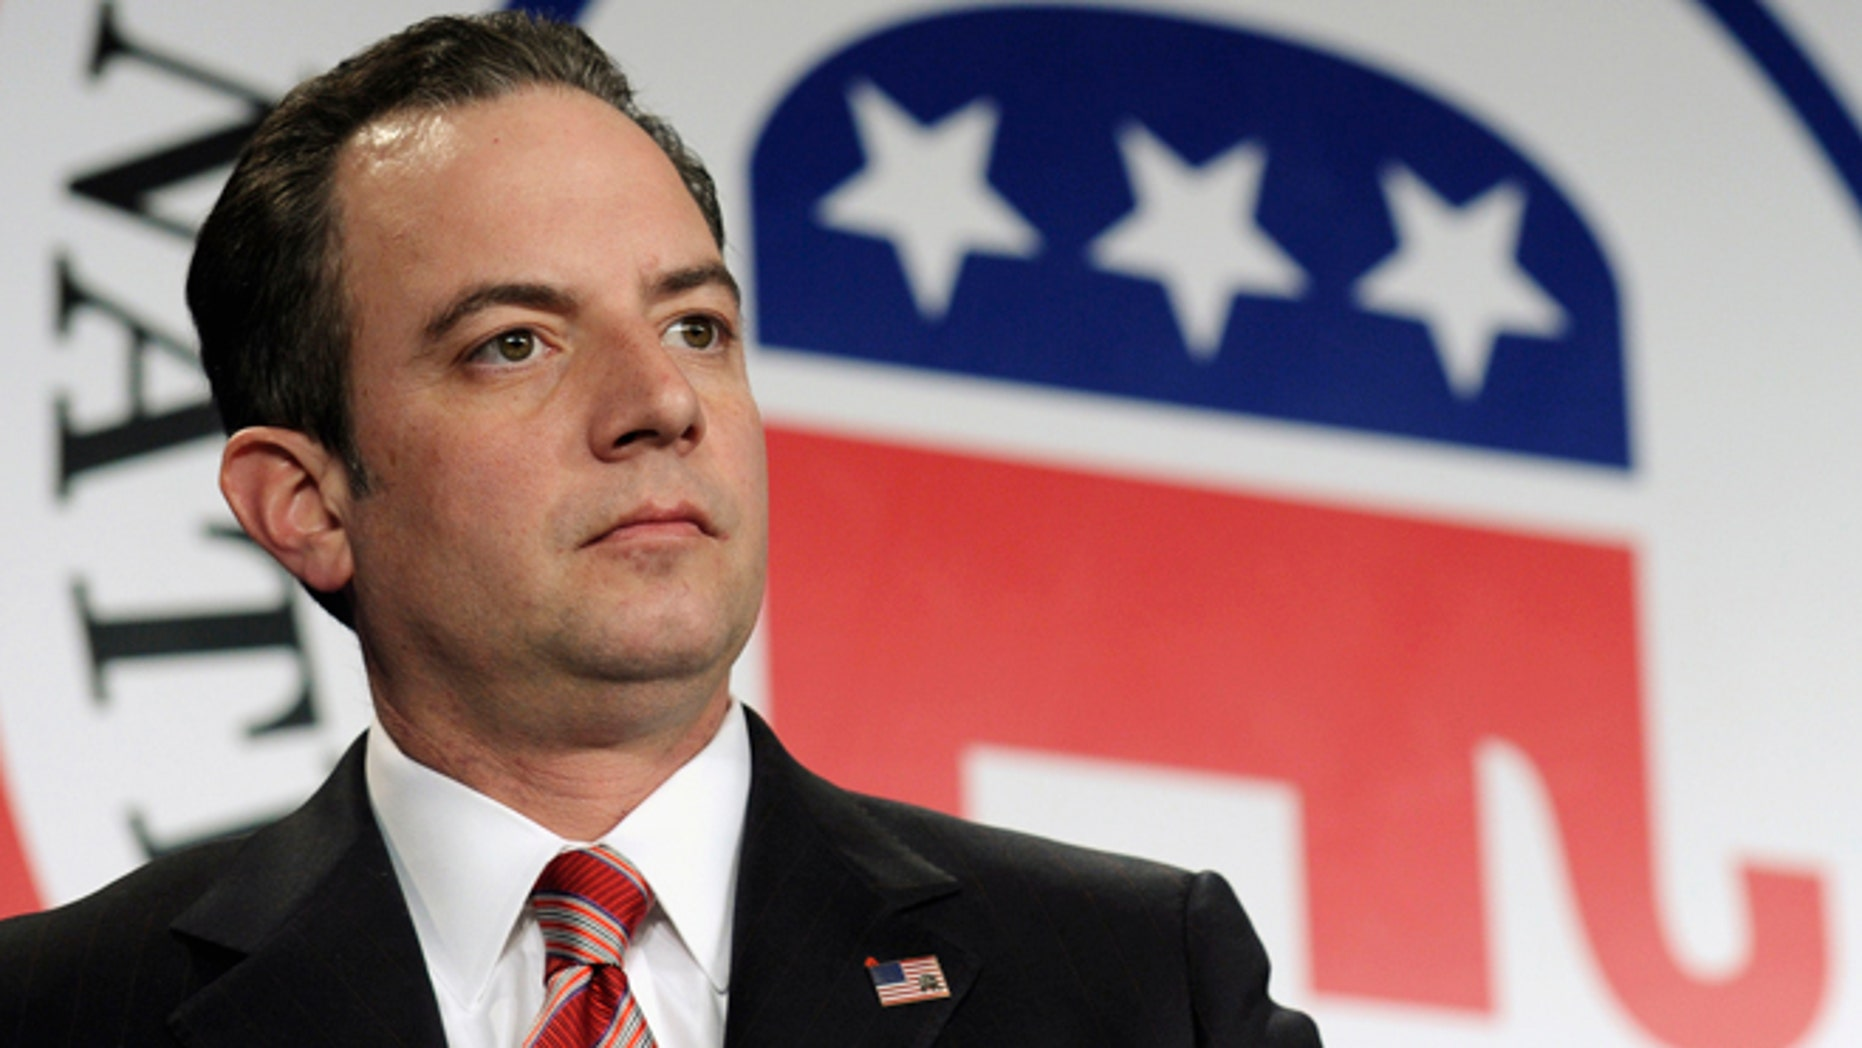 FILE - In this Jan. 24, 2014 file photo, Republican National Committee Chairman Reince  Priebus is seen at the RNC winter meeting in Washington. Priebus says the GOP is ready to lead. He delivered a speech at Georgetown University on Thursday outlining a series of âunifying goalsâ that included an improved immigration system, a strong national defense and conservative family values, among other priorities should Republicans win the Senate majority and make other gains on Election Day.  (AP Photo/Susan Walsh, File)